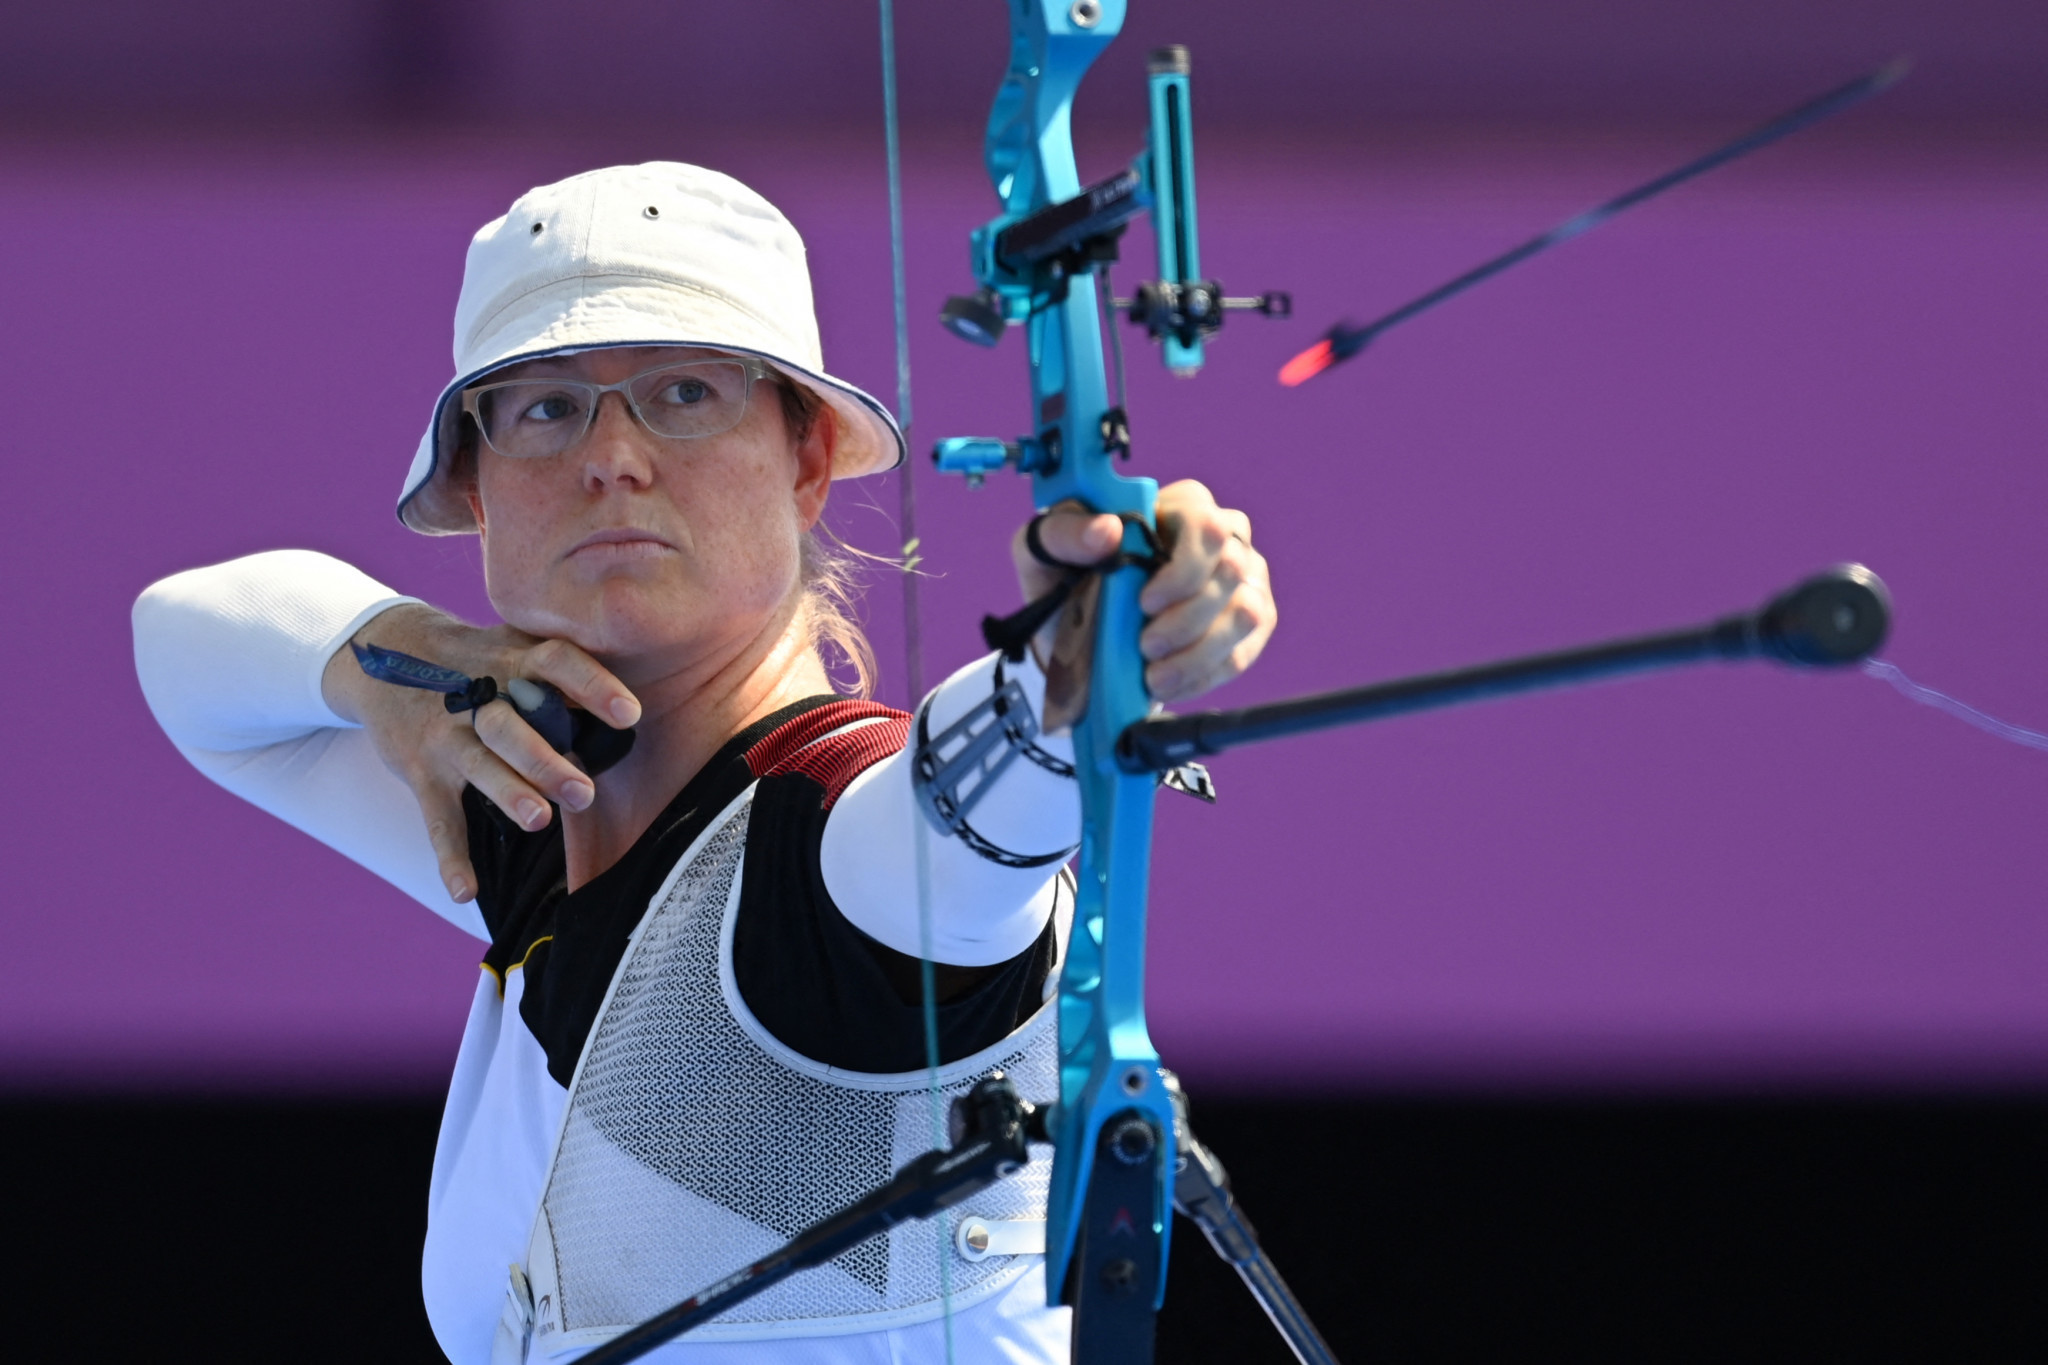 Unruh and Williams win Archery World Cup recurve crowns